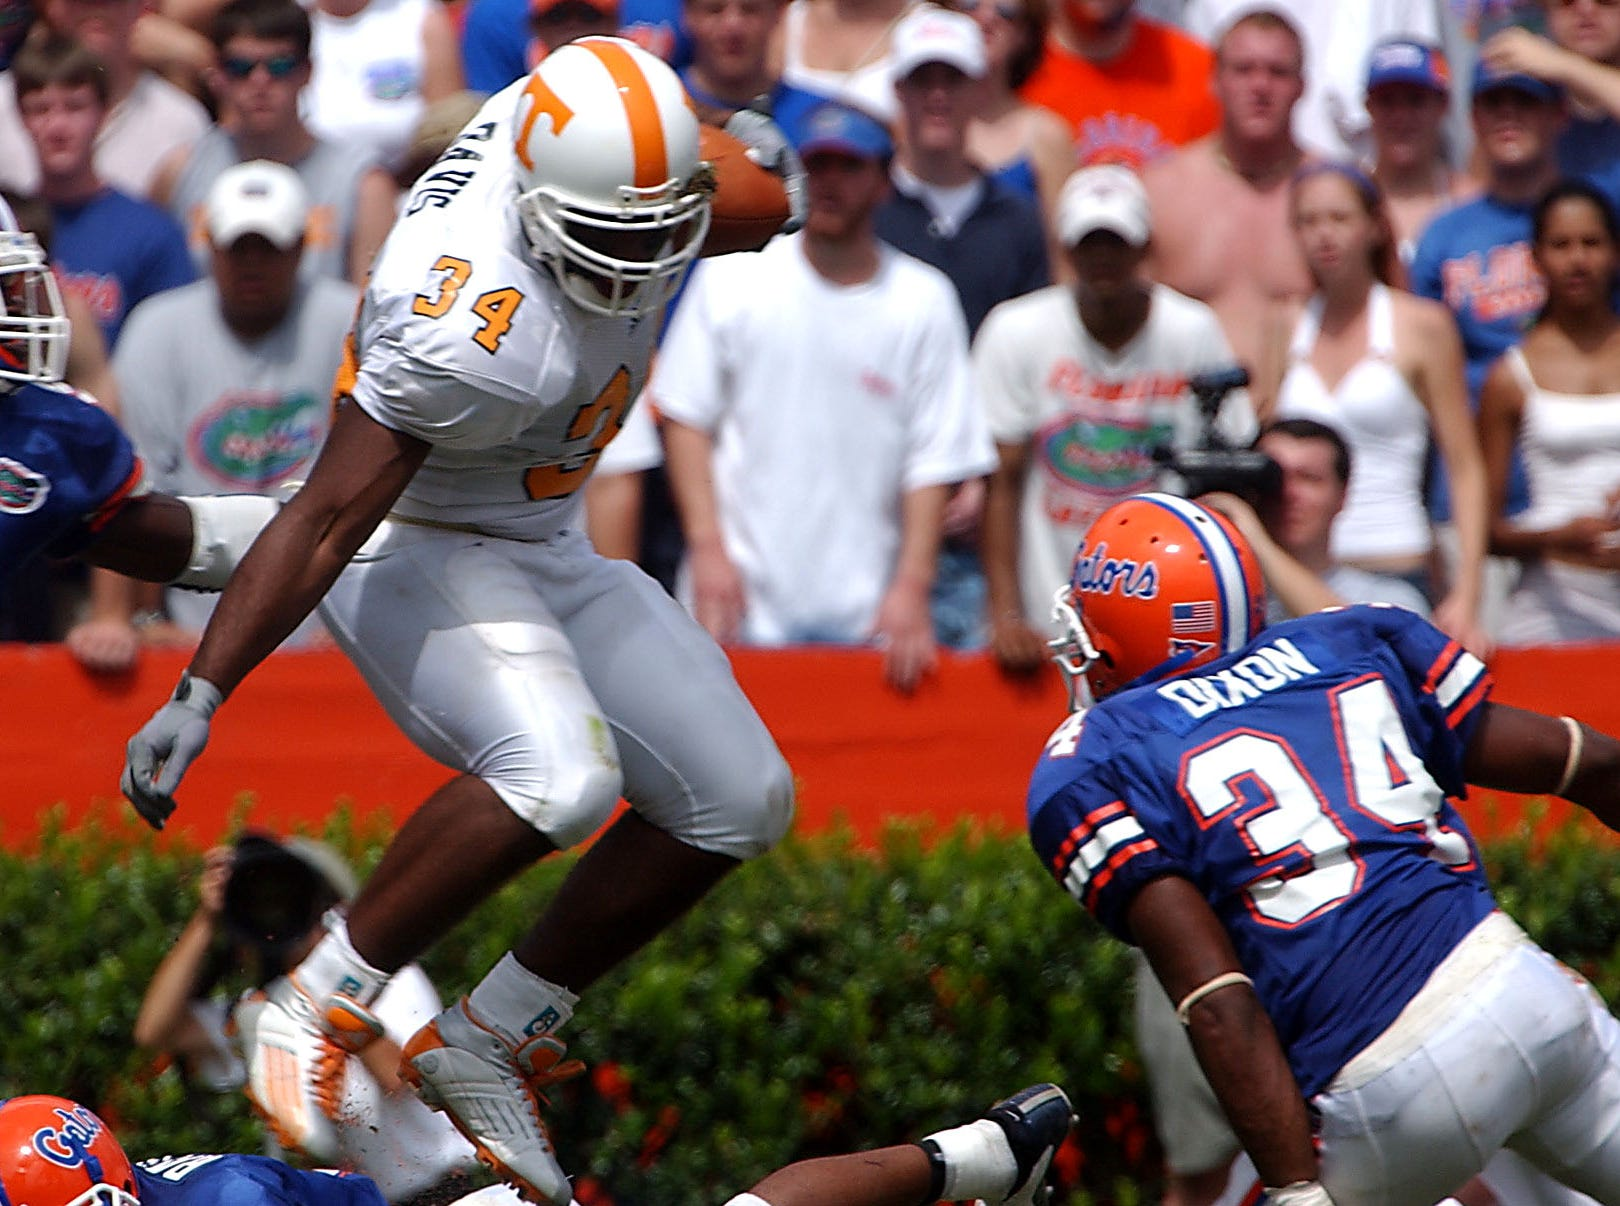 Tennessee's (34) Jabari Davis leaps over several Florida defenders during Saturday's win over the Gators.  Tennessee beat the Florida Gators 24-10.  Florida players are (34) Daryl Dixon and (9) Matt Kynes. 9/20/2003